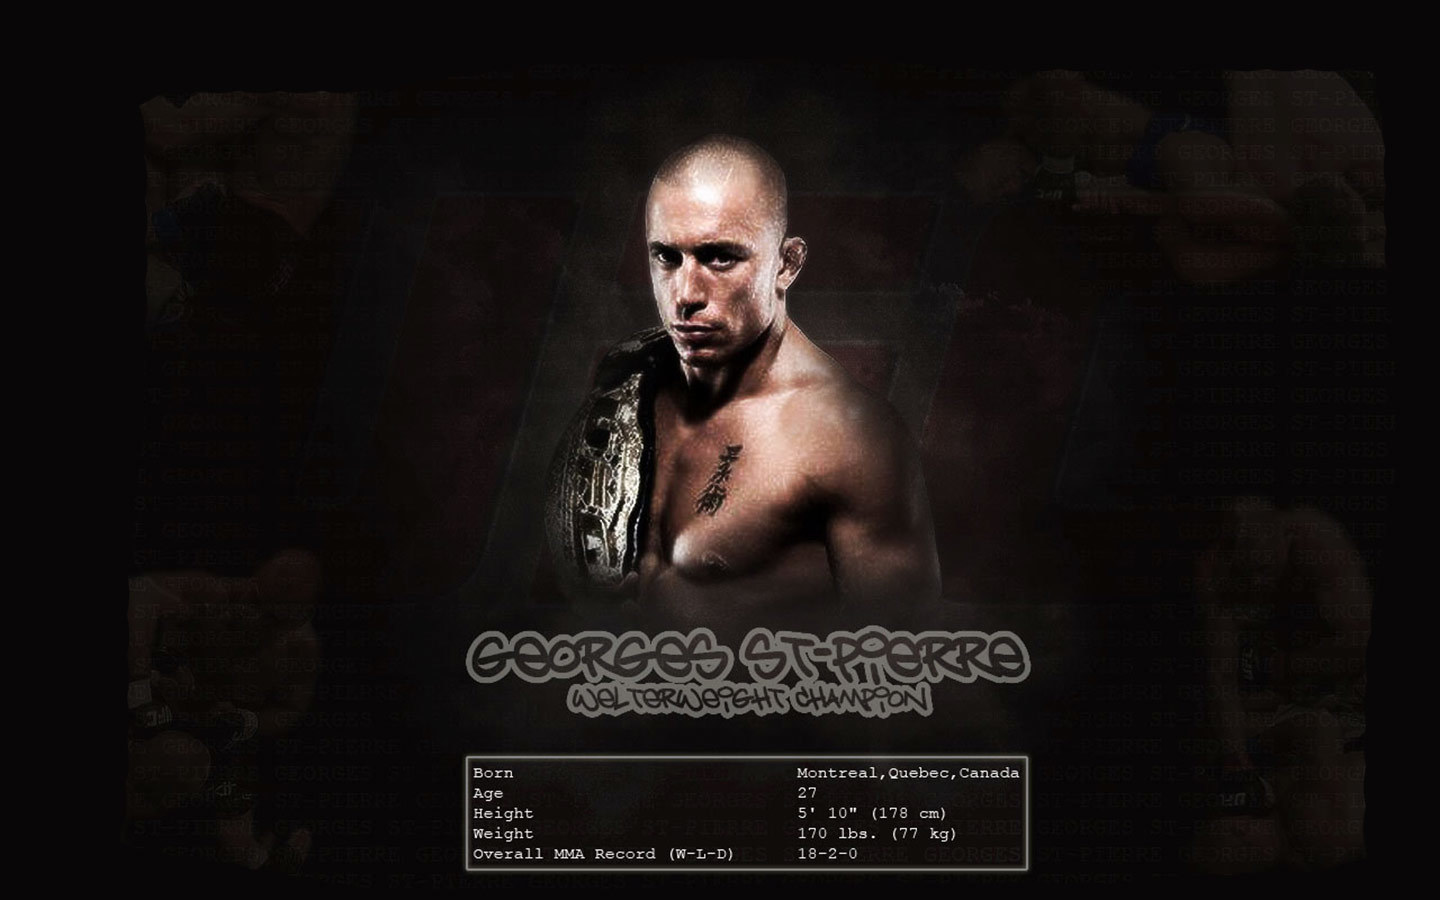 georges St pierre ufc HD Wallpaper